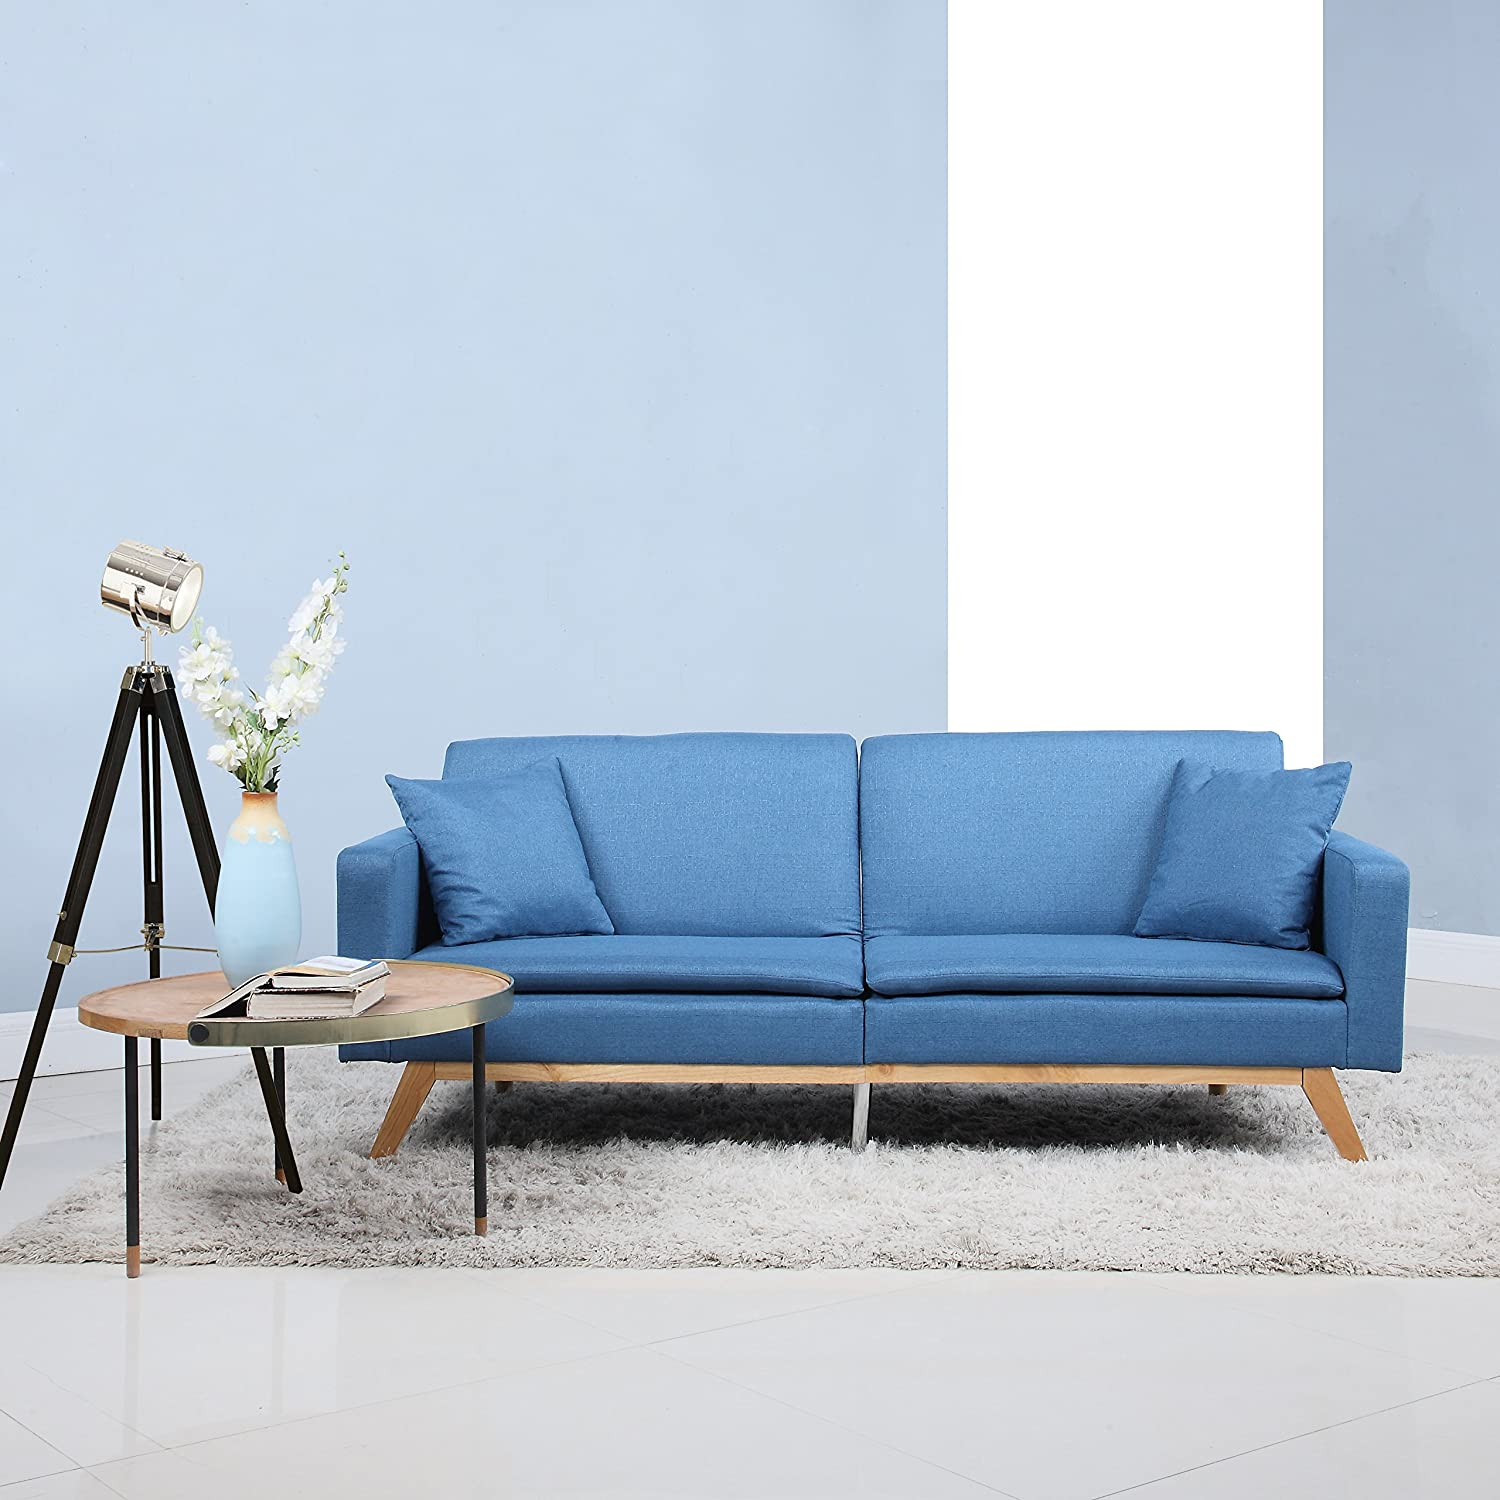 Divano Roma Furniture Modern Tufted Linen Splitback Recliner Sleeper Futon Sofa (Blue) EXP92-FB